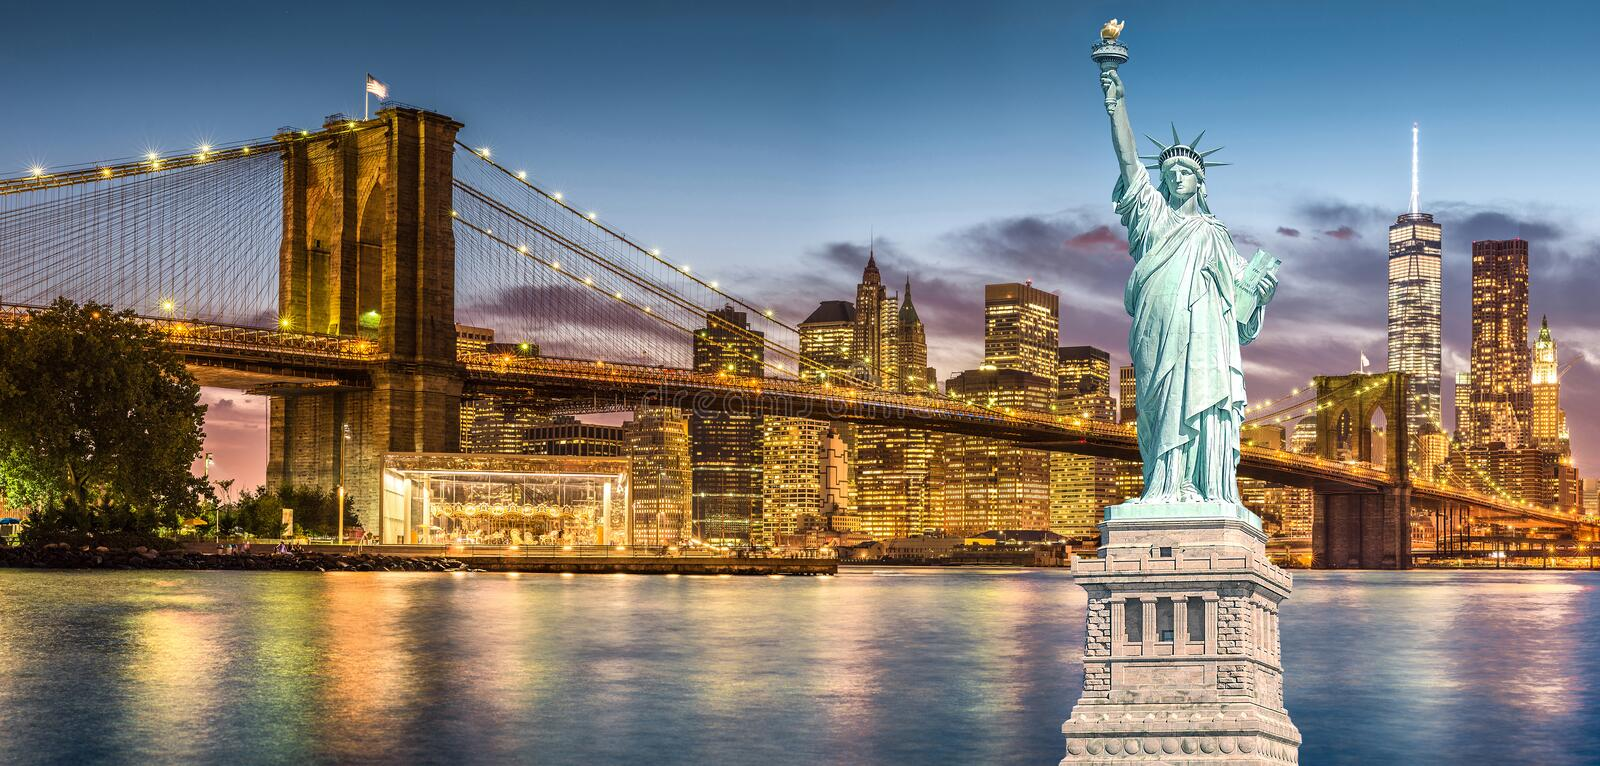 The Statue of Liberty and Brooklyn Bridge with World Trade Center background twilight sunset view, Landmarks of New York City. USA royalty free stock images